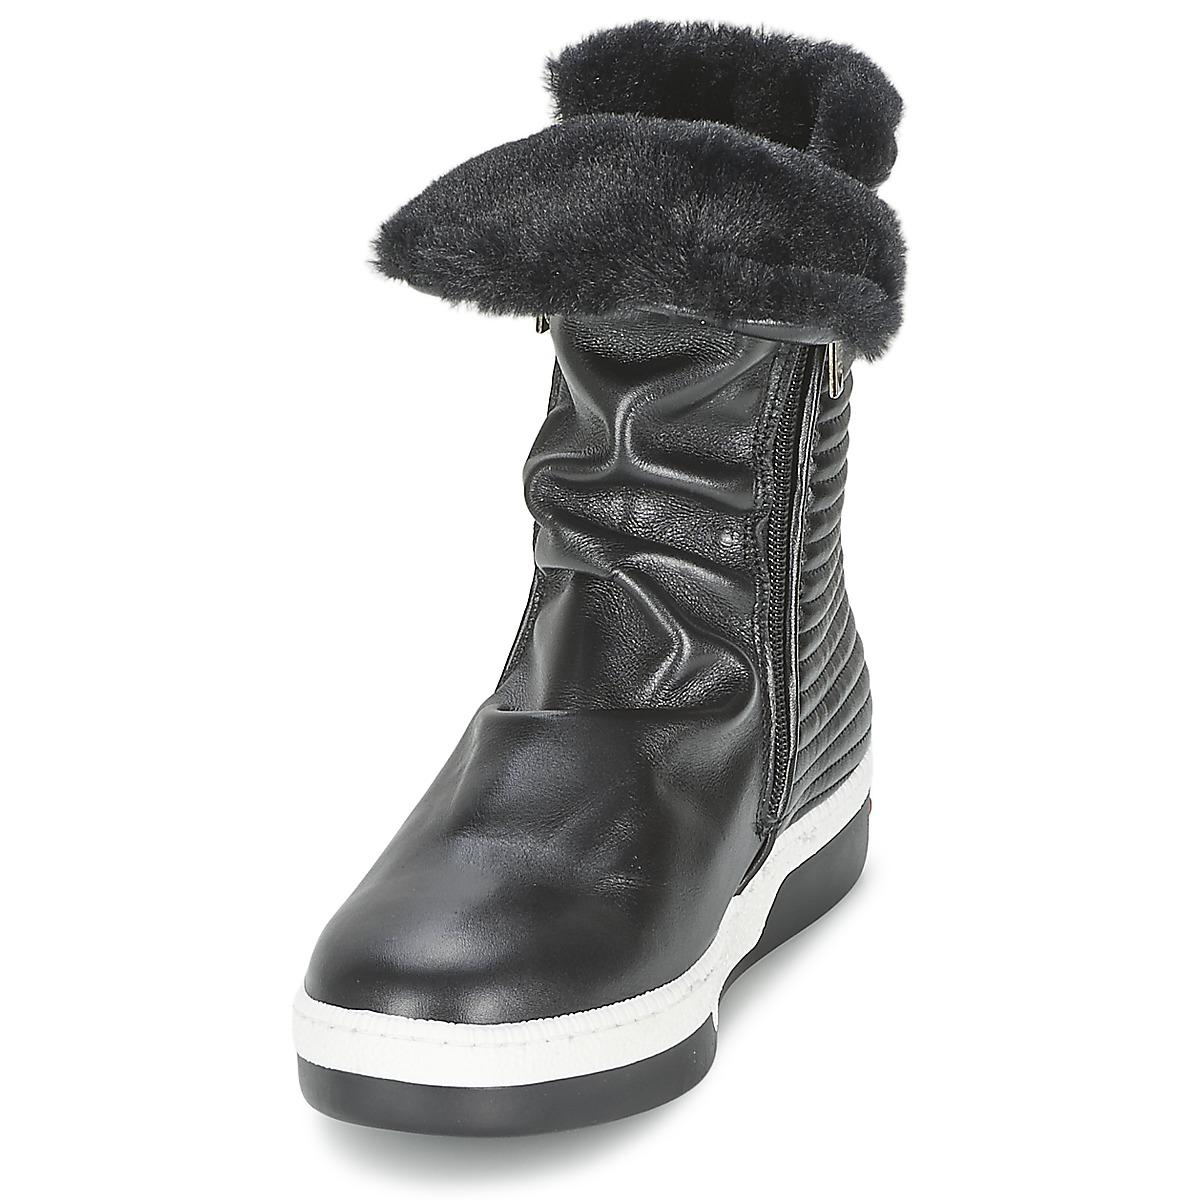 Moschino VALABA women's Mid Boots in Free Shipping Good Selling Clearance Extremely Pay With Visa For Sale Buy Cheap 2018 4w0zQTIQ8